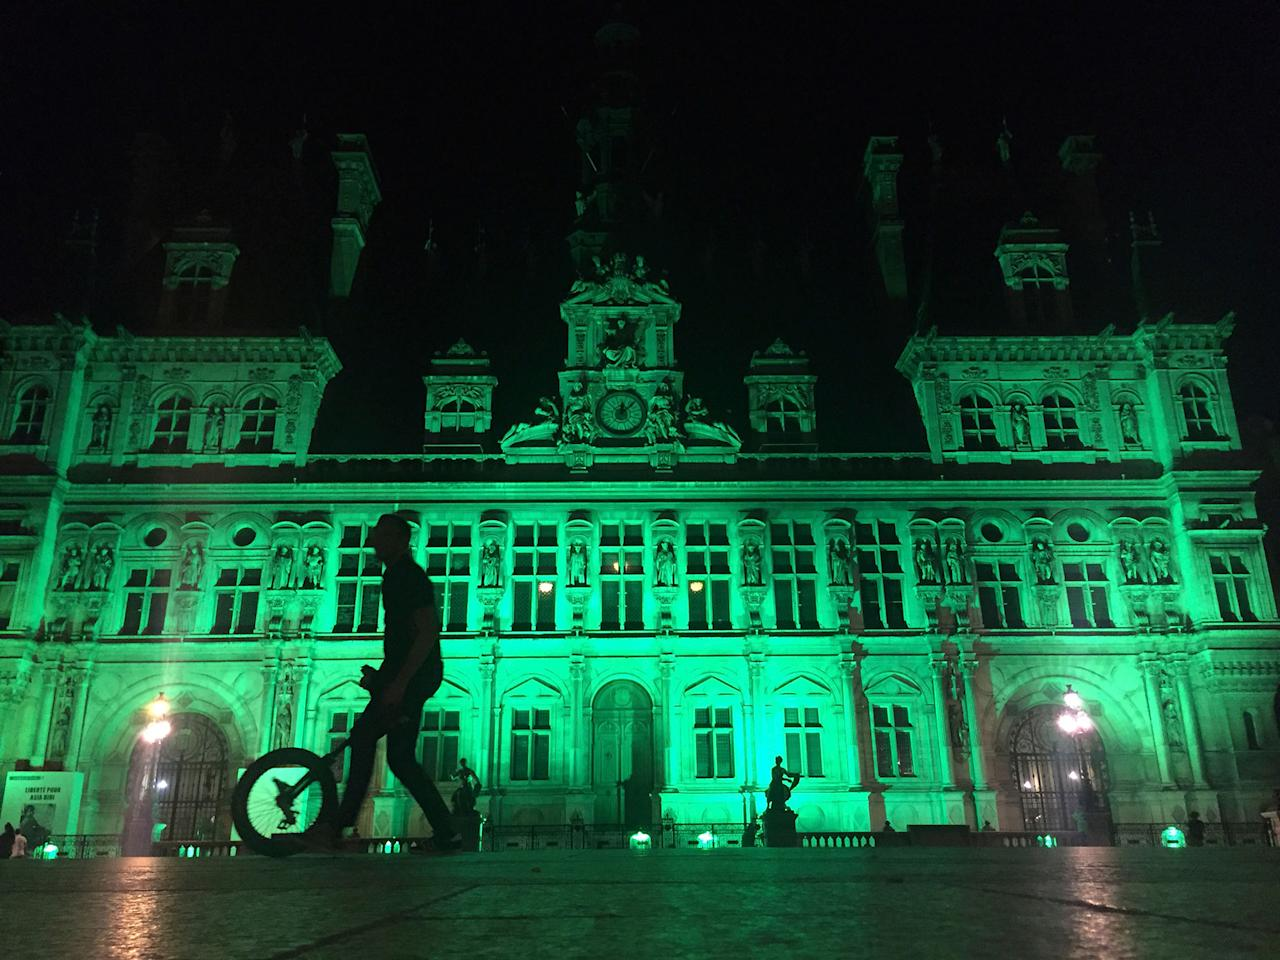 <p>The City Hall of Paris, France, was illuminated in green on June 1, 2017, following the announcement by President Donald Trump that the United States will withdraw from the 2015 Paris accord and try to negotiate a new global deal on climate change. (AP Photo/Nadine Achoui-Lesage) </p>